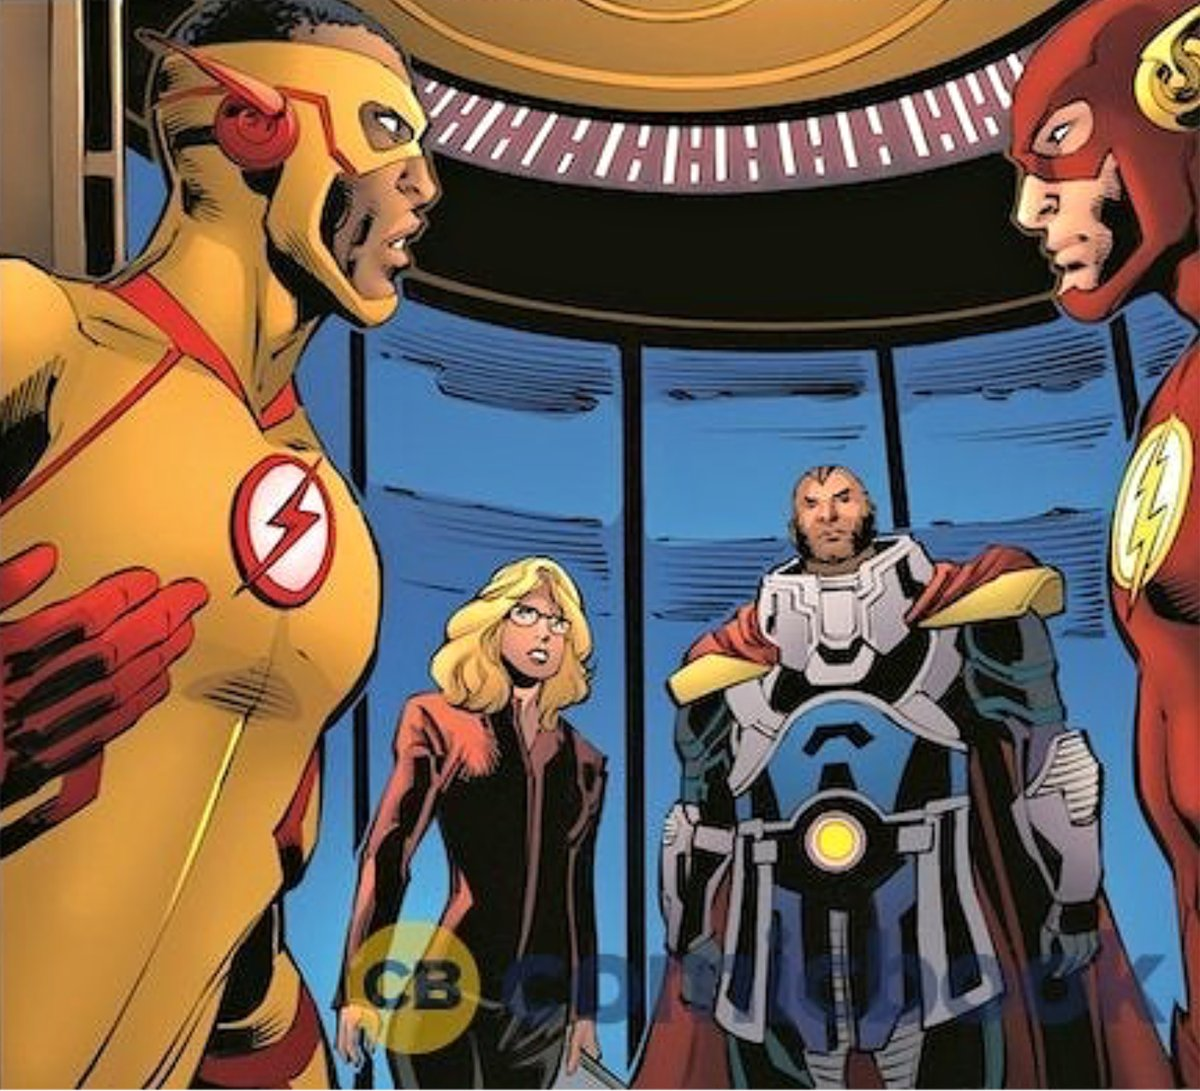 Felicity Smoak & Kid Flash aren't in the big crossover #CrisisonInfiniteEarths. But they are in the comic book tie-ins: (http://hollywoodnorth.buzz/2019/12/crossover-felicity-smoak-wally-west-nyssa-al-ghul-the-ray-in-new-crisis-on-infinite-earths-comic-books.html …) #Arrow #TheFlash 📷Comic Book image.